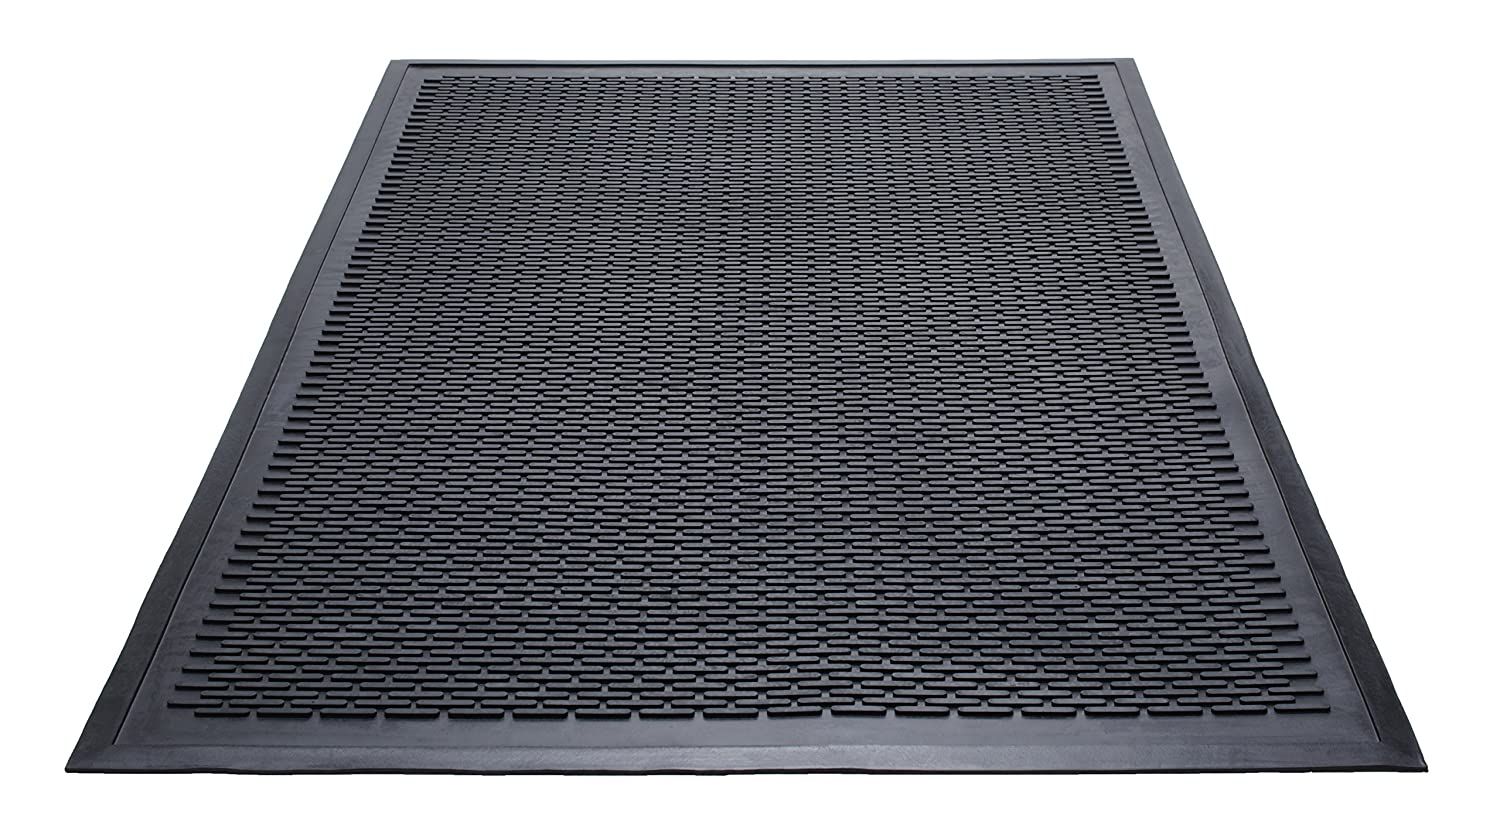 Guardian Clean Step Scraper Outdoor Floor Mat, Natural Rubber, 3'x5', Black, Ideal for any outside entryway, Scrapes Shoes Clean of Dirt and Grime 3'x5' Millennium Mat Company MLL14030500